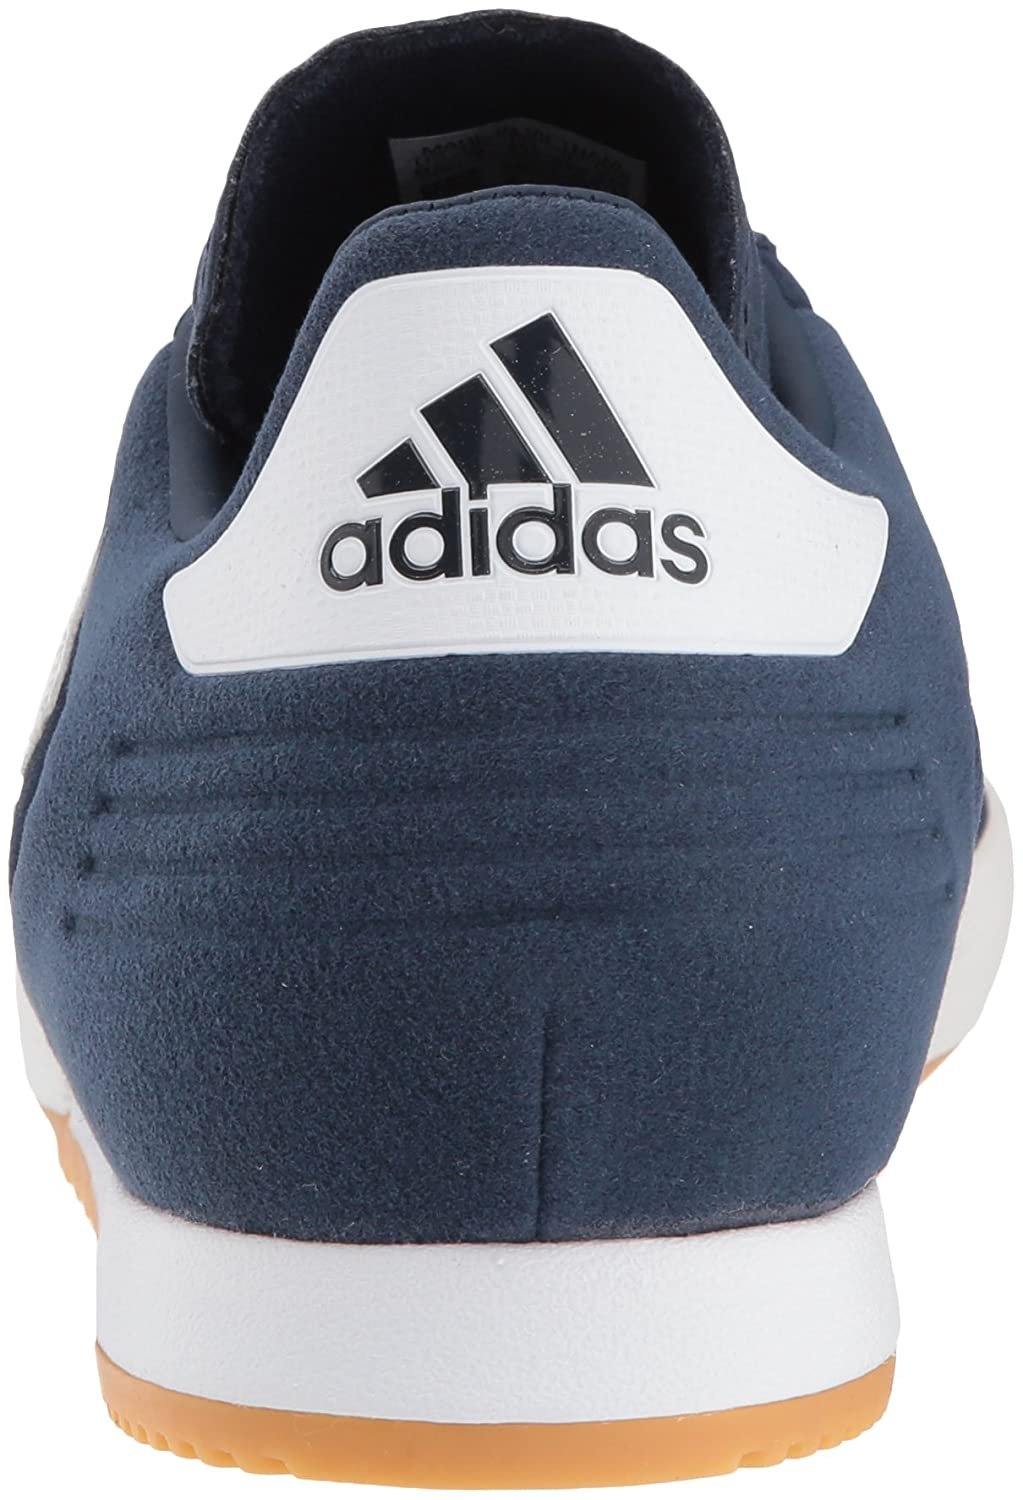 new styles a72bc 8c6b1 Amazon.com  adidas Mens Copa Super Soccer Shoe  Soccer